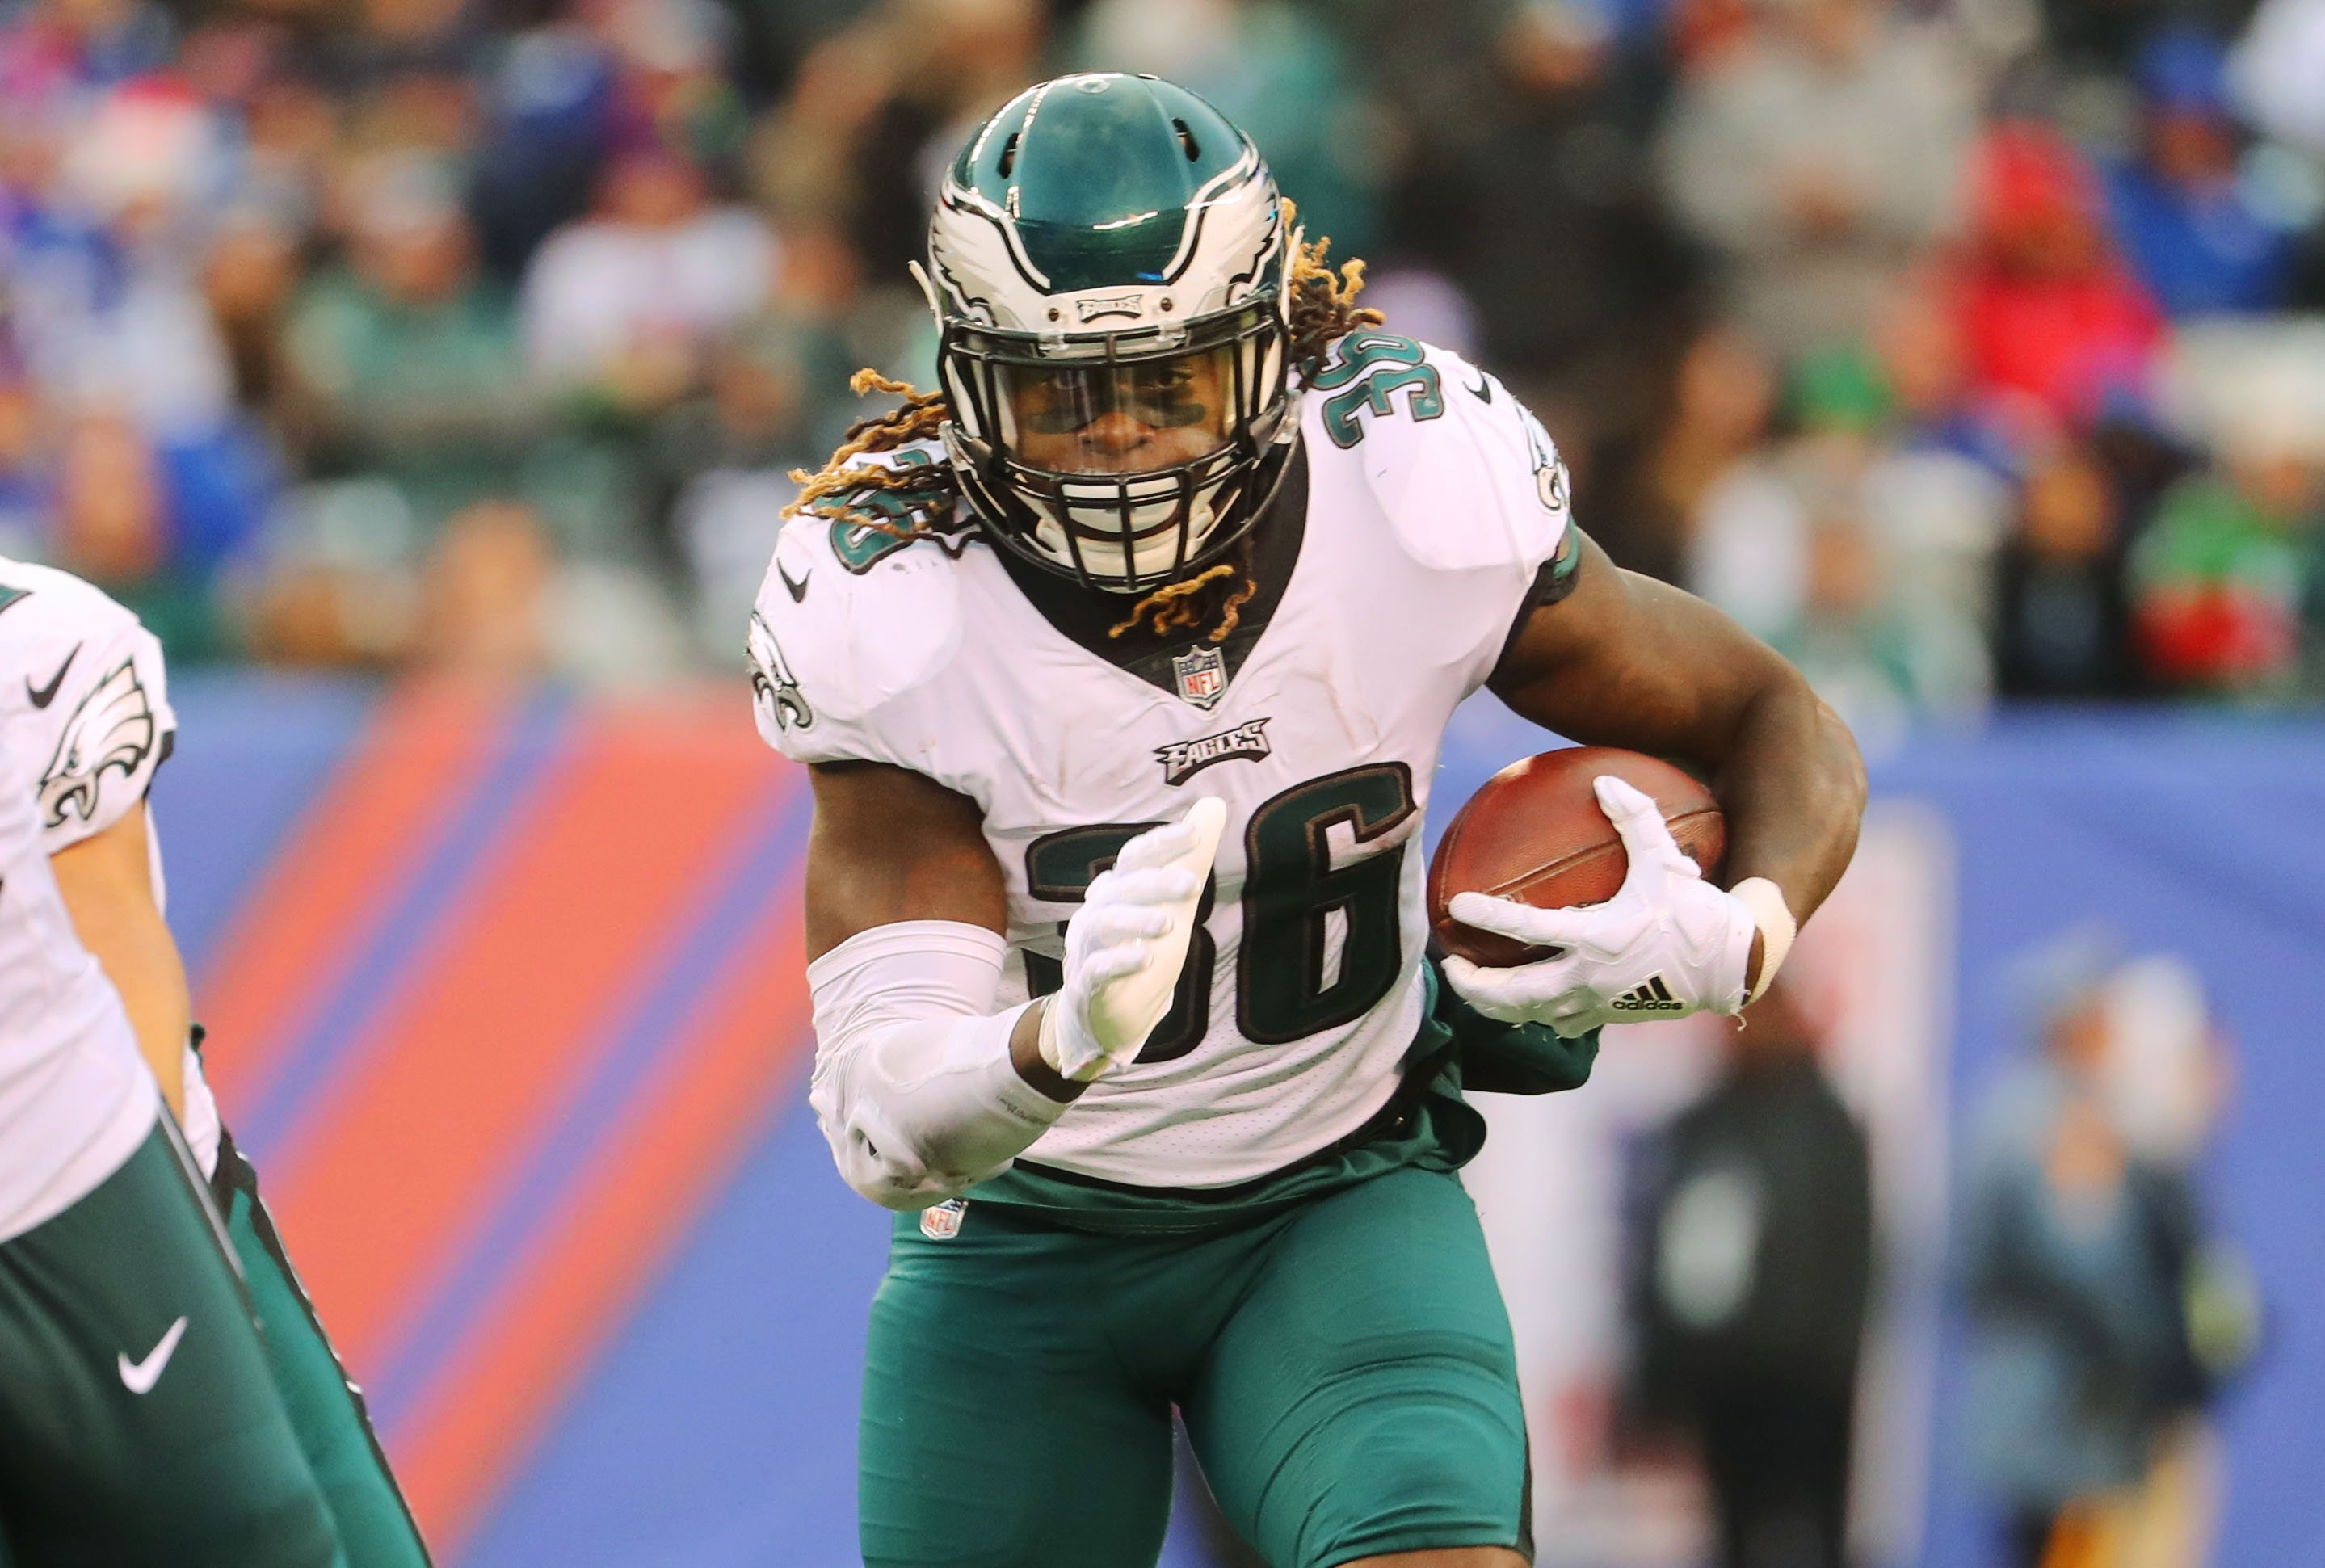 NFL free agency: Who remains on open market? Jay Ajayi, Muhammad Wilkerson, Eric Berry, more